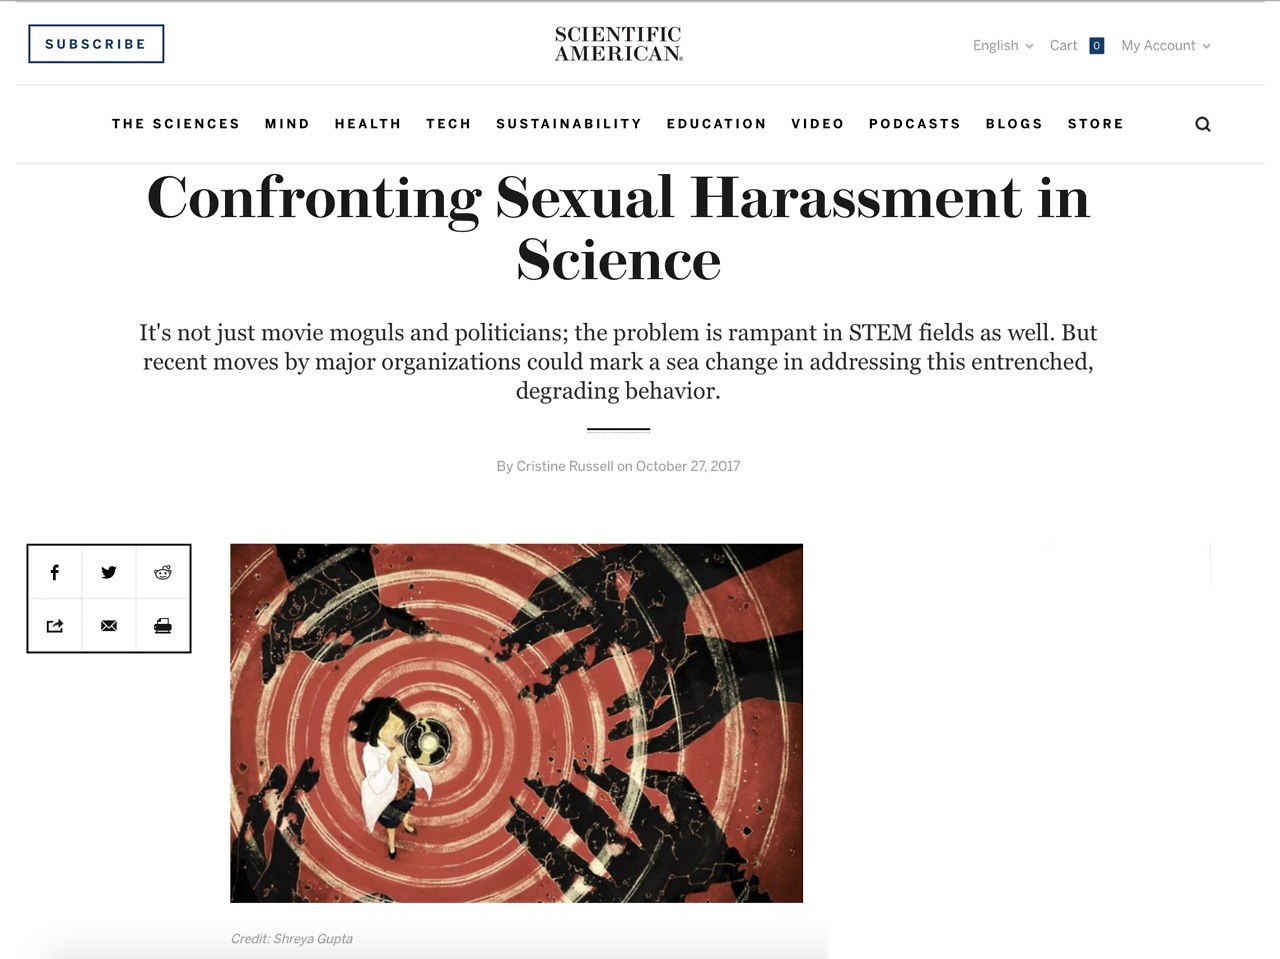 Shreya_tearsheet_Women Confronting Sexual Harrasment in Science.png